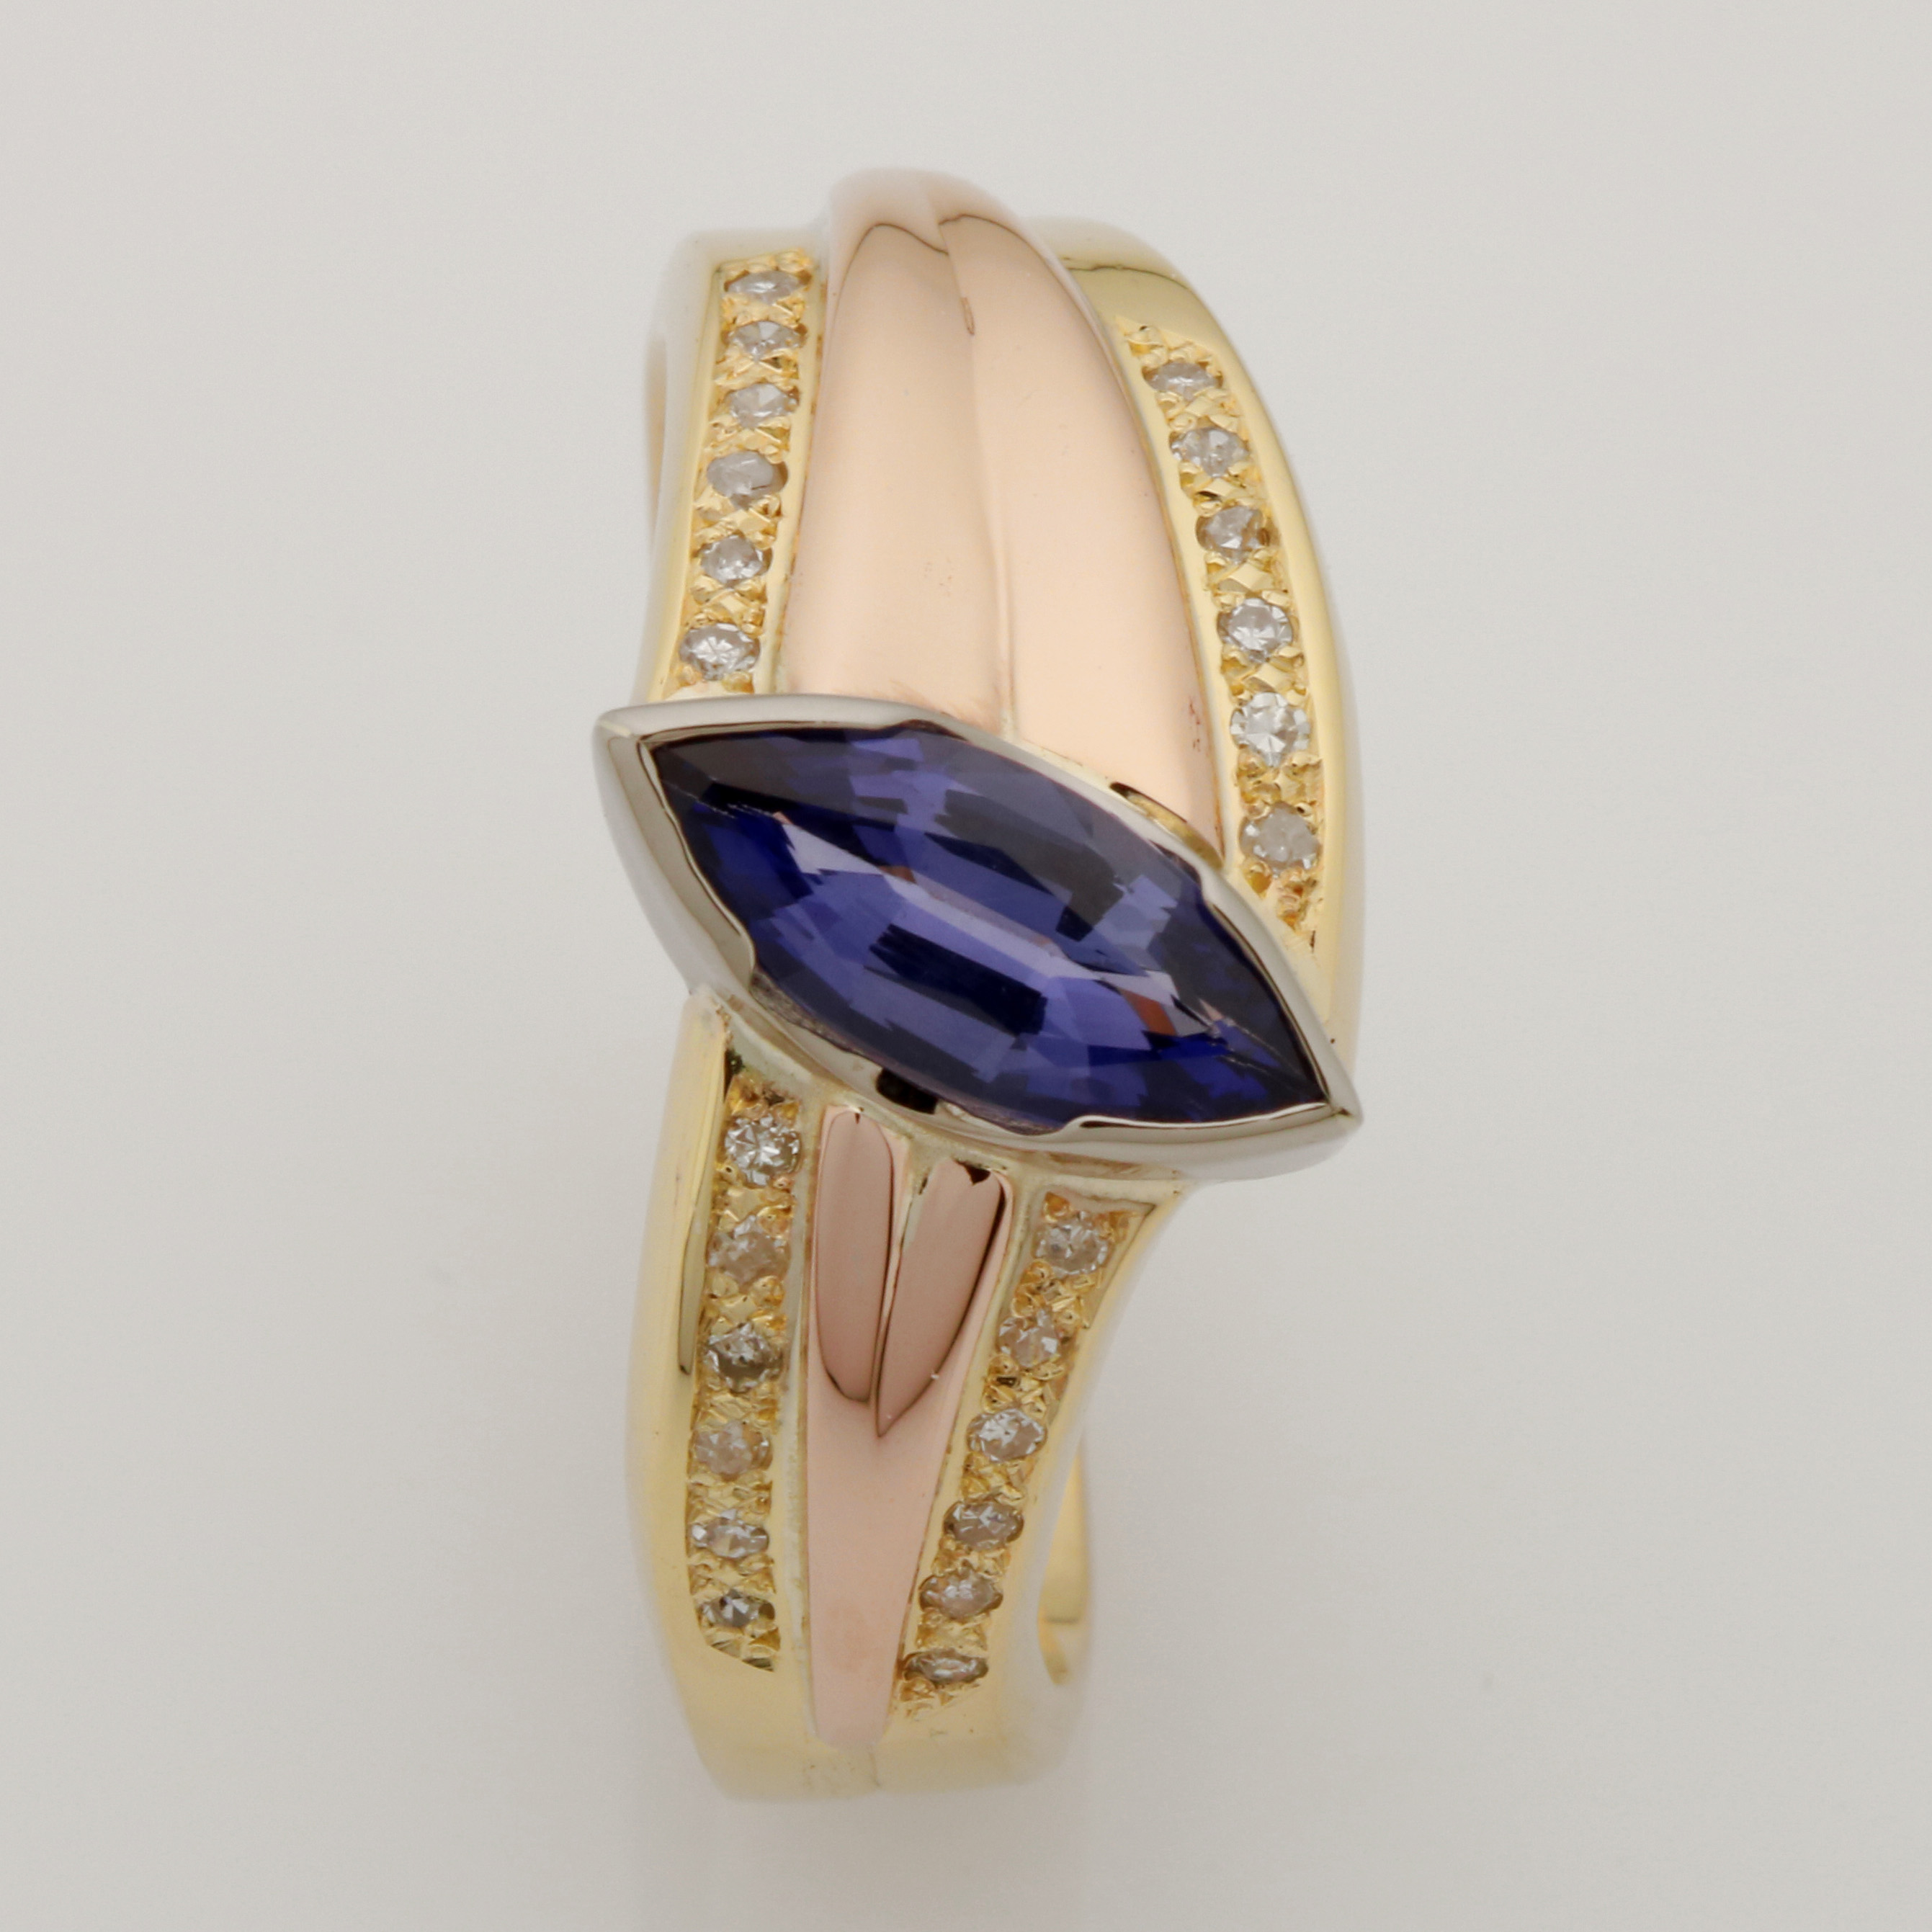 Ladies handmade 9ct and 18ct yellow, rose and white gold sapphire and diamond ring